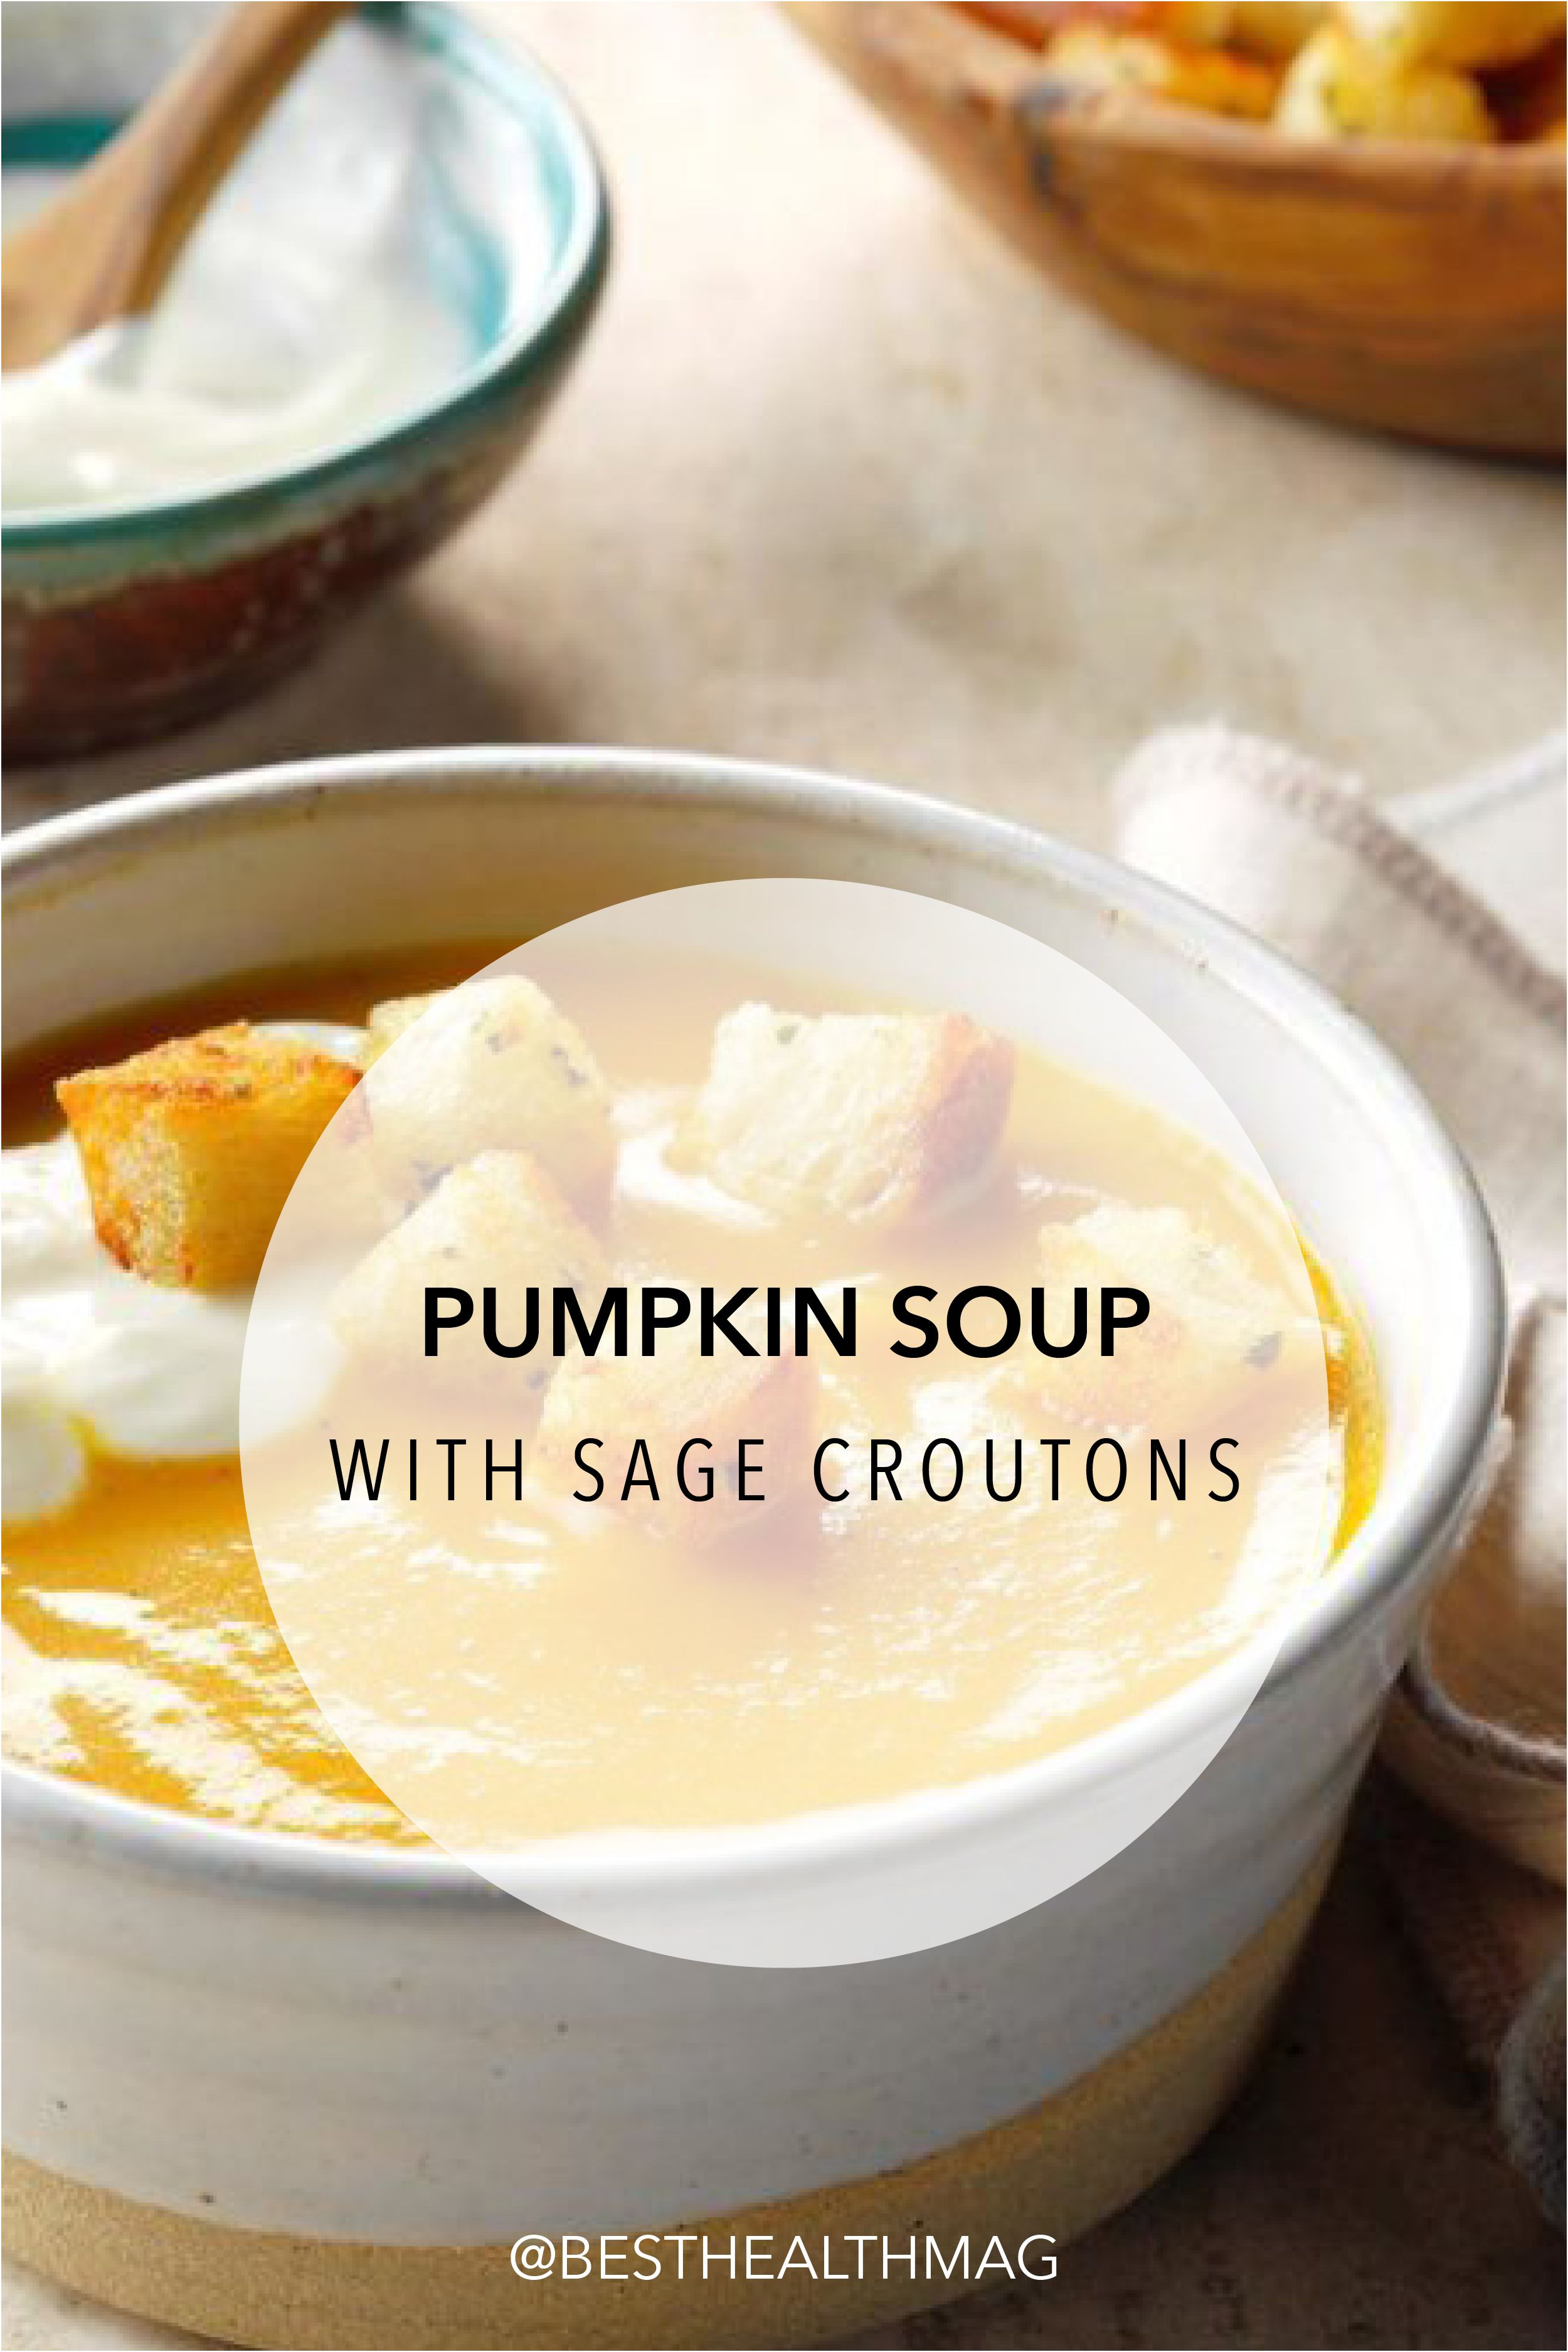 A Dollop Of Sour Cream And A Sprinkling Of Crunchy Croutons Give